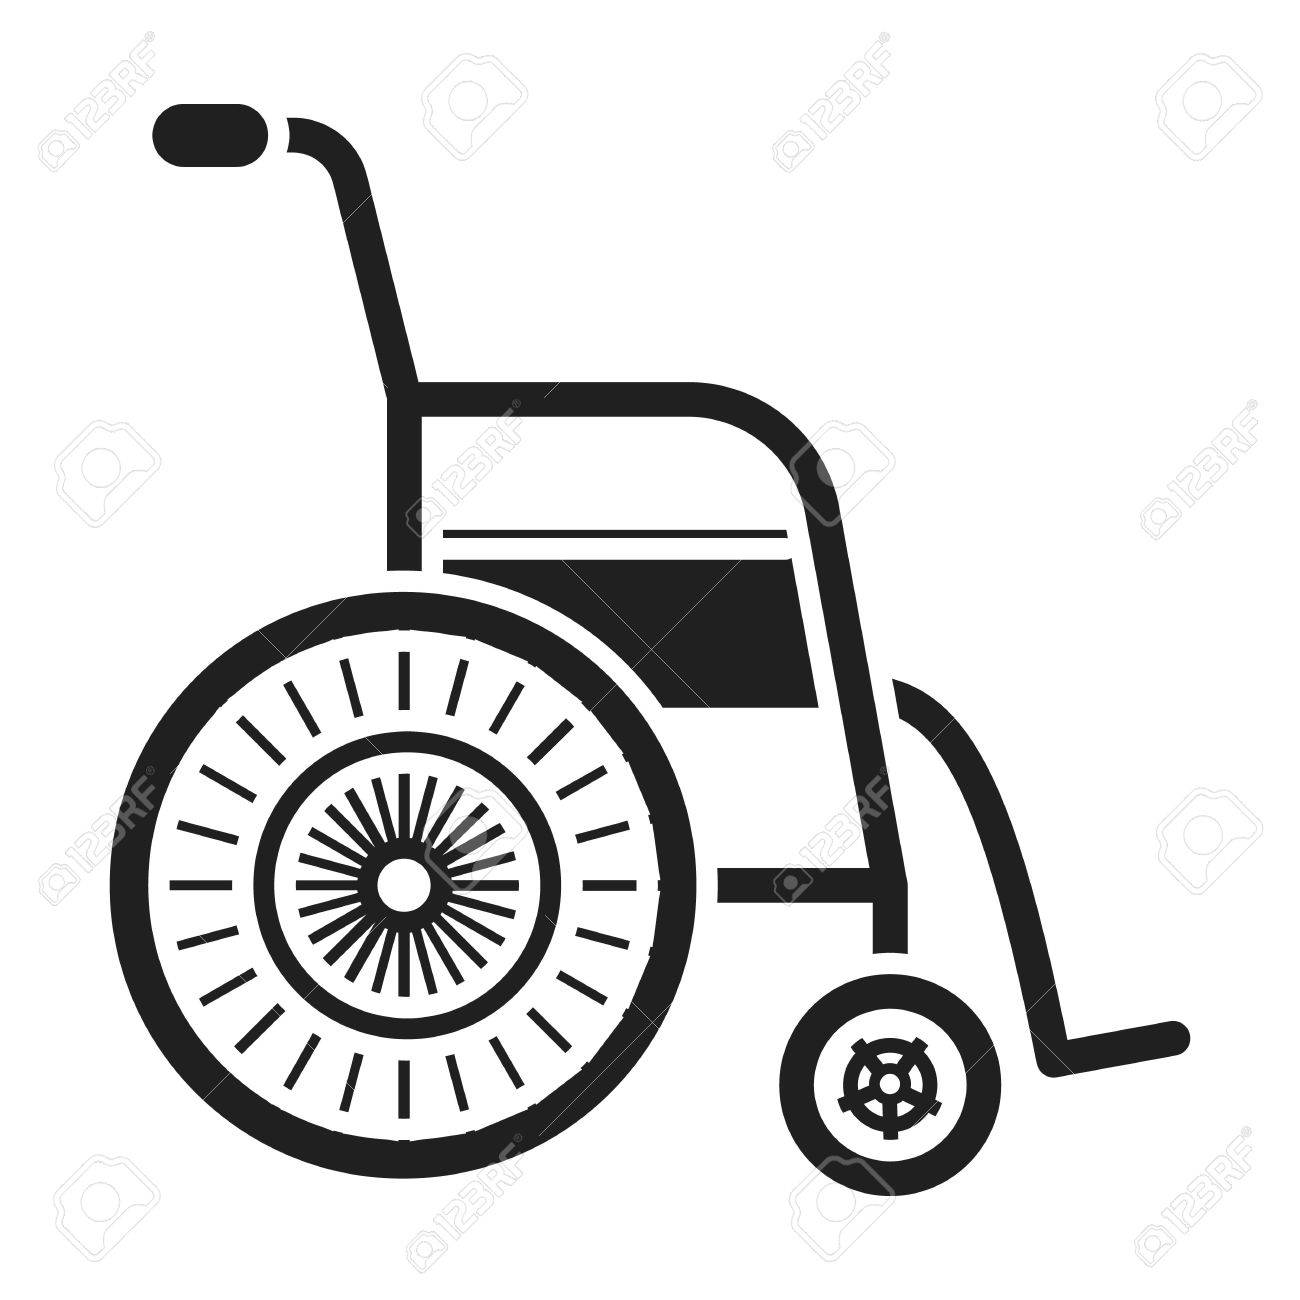 Wheelchair icon in black style isolated on white background.